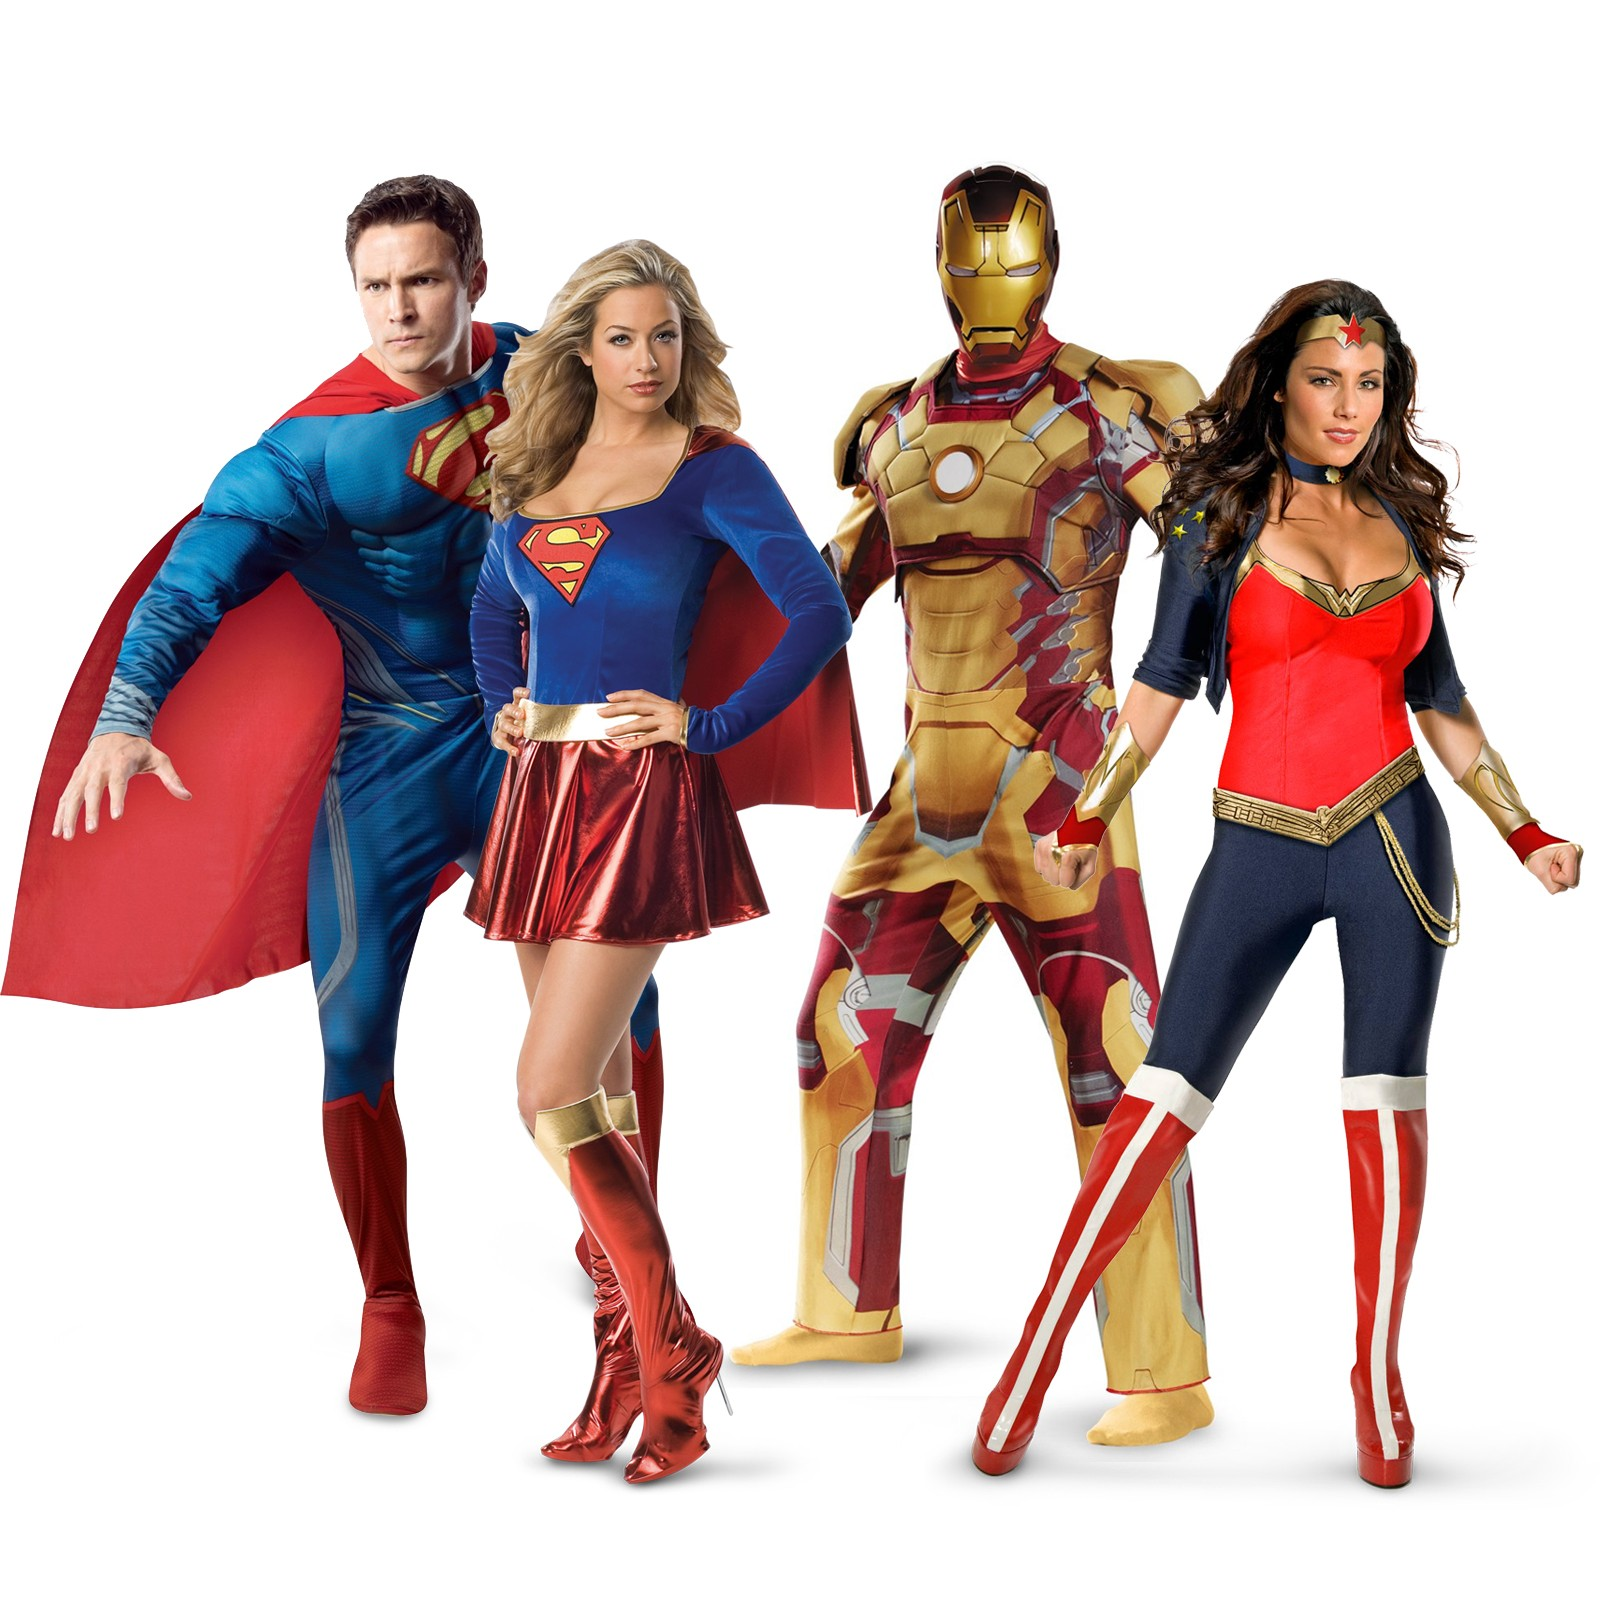 superheroes-heroinas-disfraces-superman-supergirl-ironman-wonder-woman